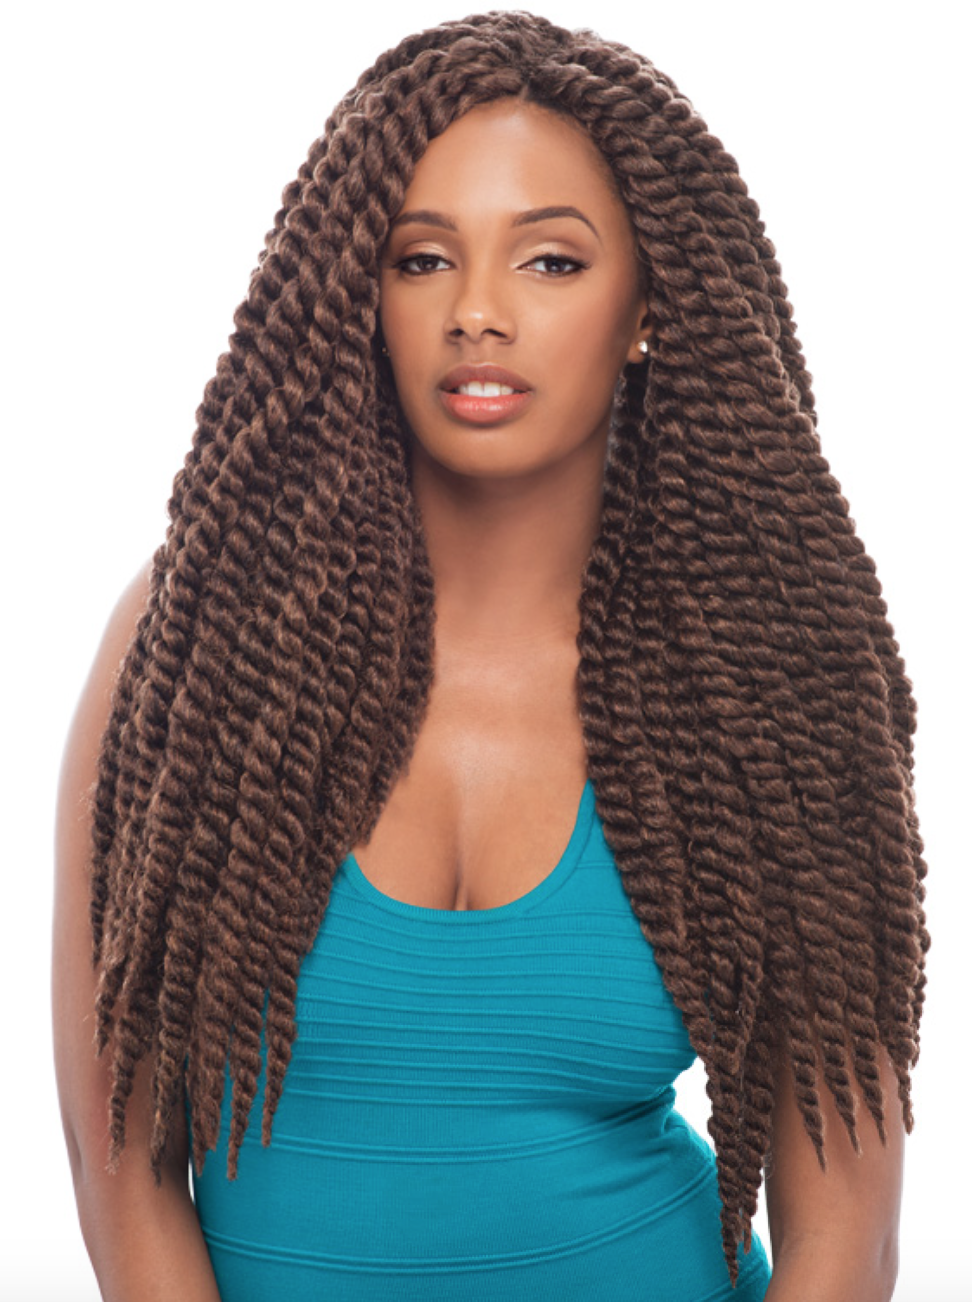 Crochet Braid Type Bold Twisted Thickness 1 Inches Strand Number